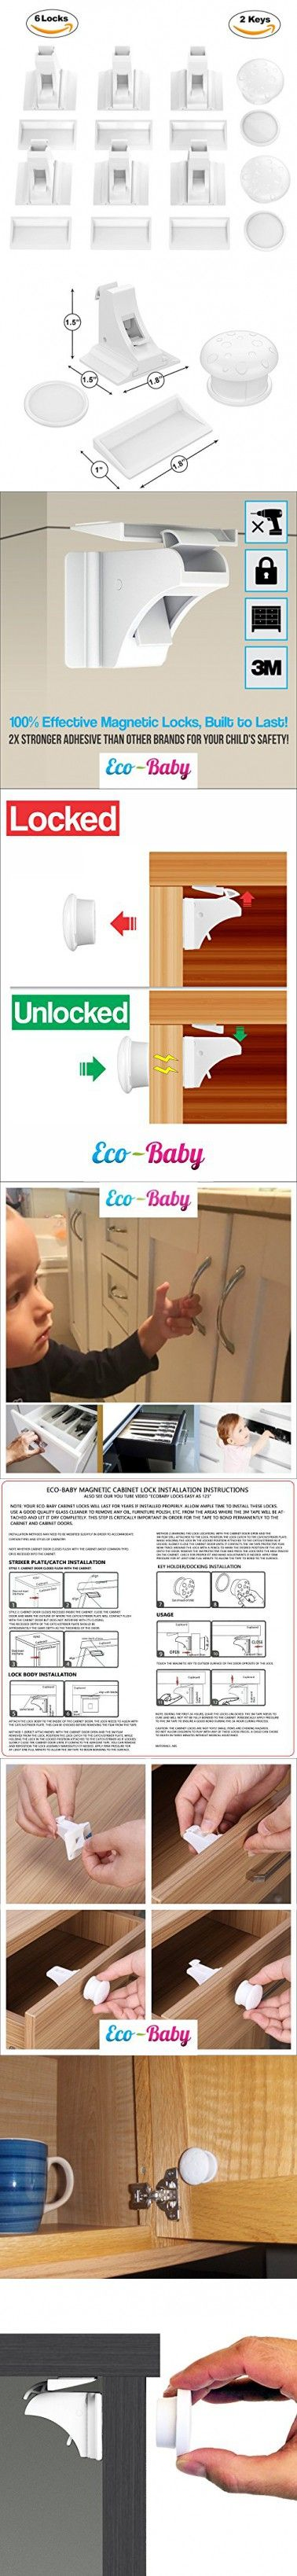 Safety 1st 8 lock complete magnetic locking system set safety 1st - Baby Child Proof Cabinet Drawers Magnetic Safety Locks Set Of 6 With 2 Keys By Eco Baby Heavy Duty Locking System With 3m Adhesive Tape Easy To